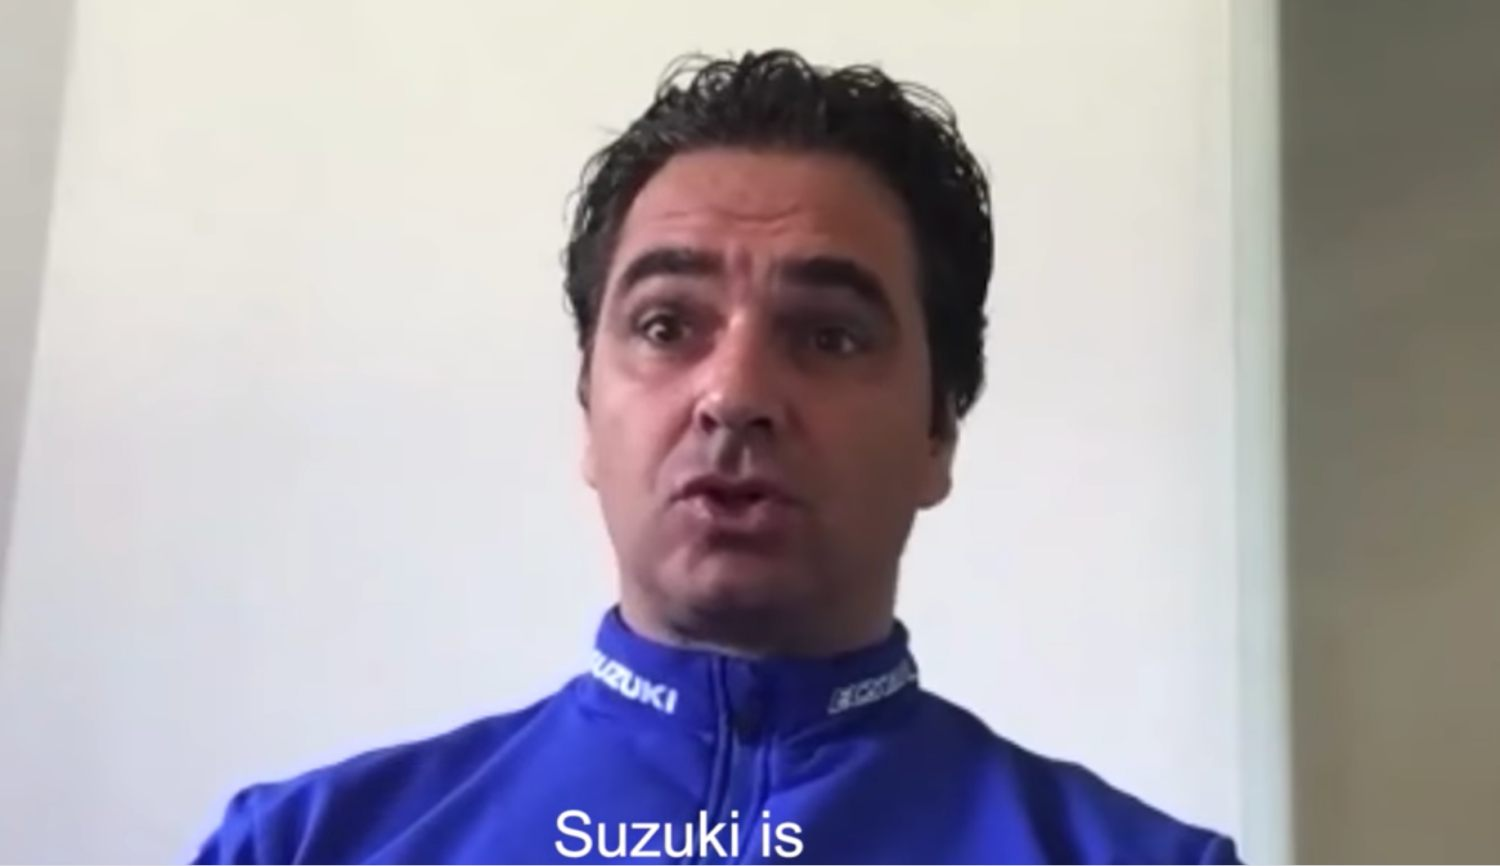 What is Suzuki for you?